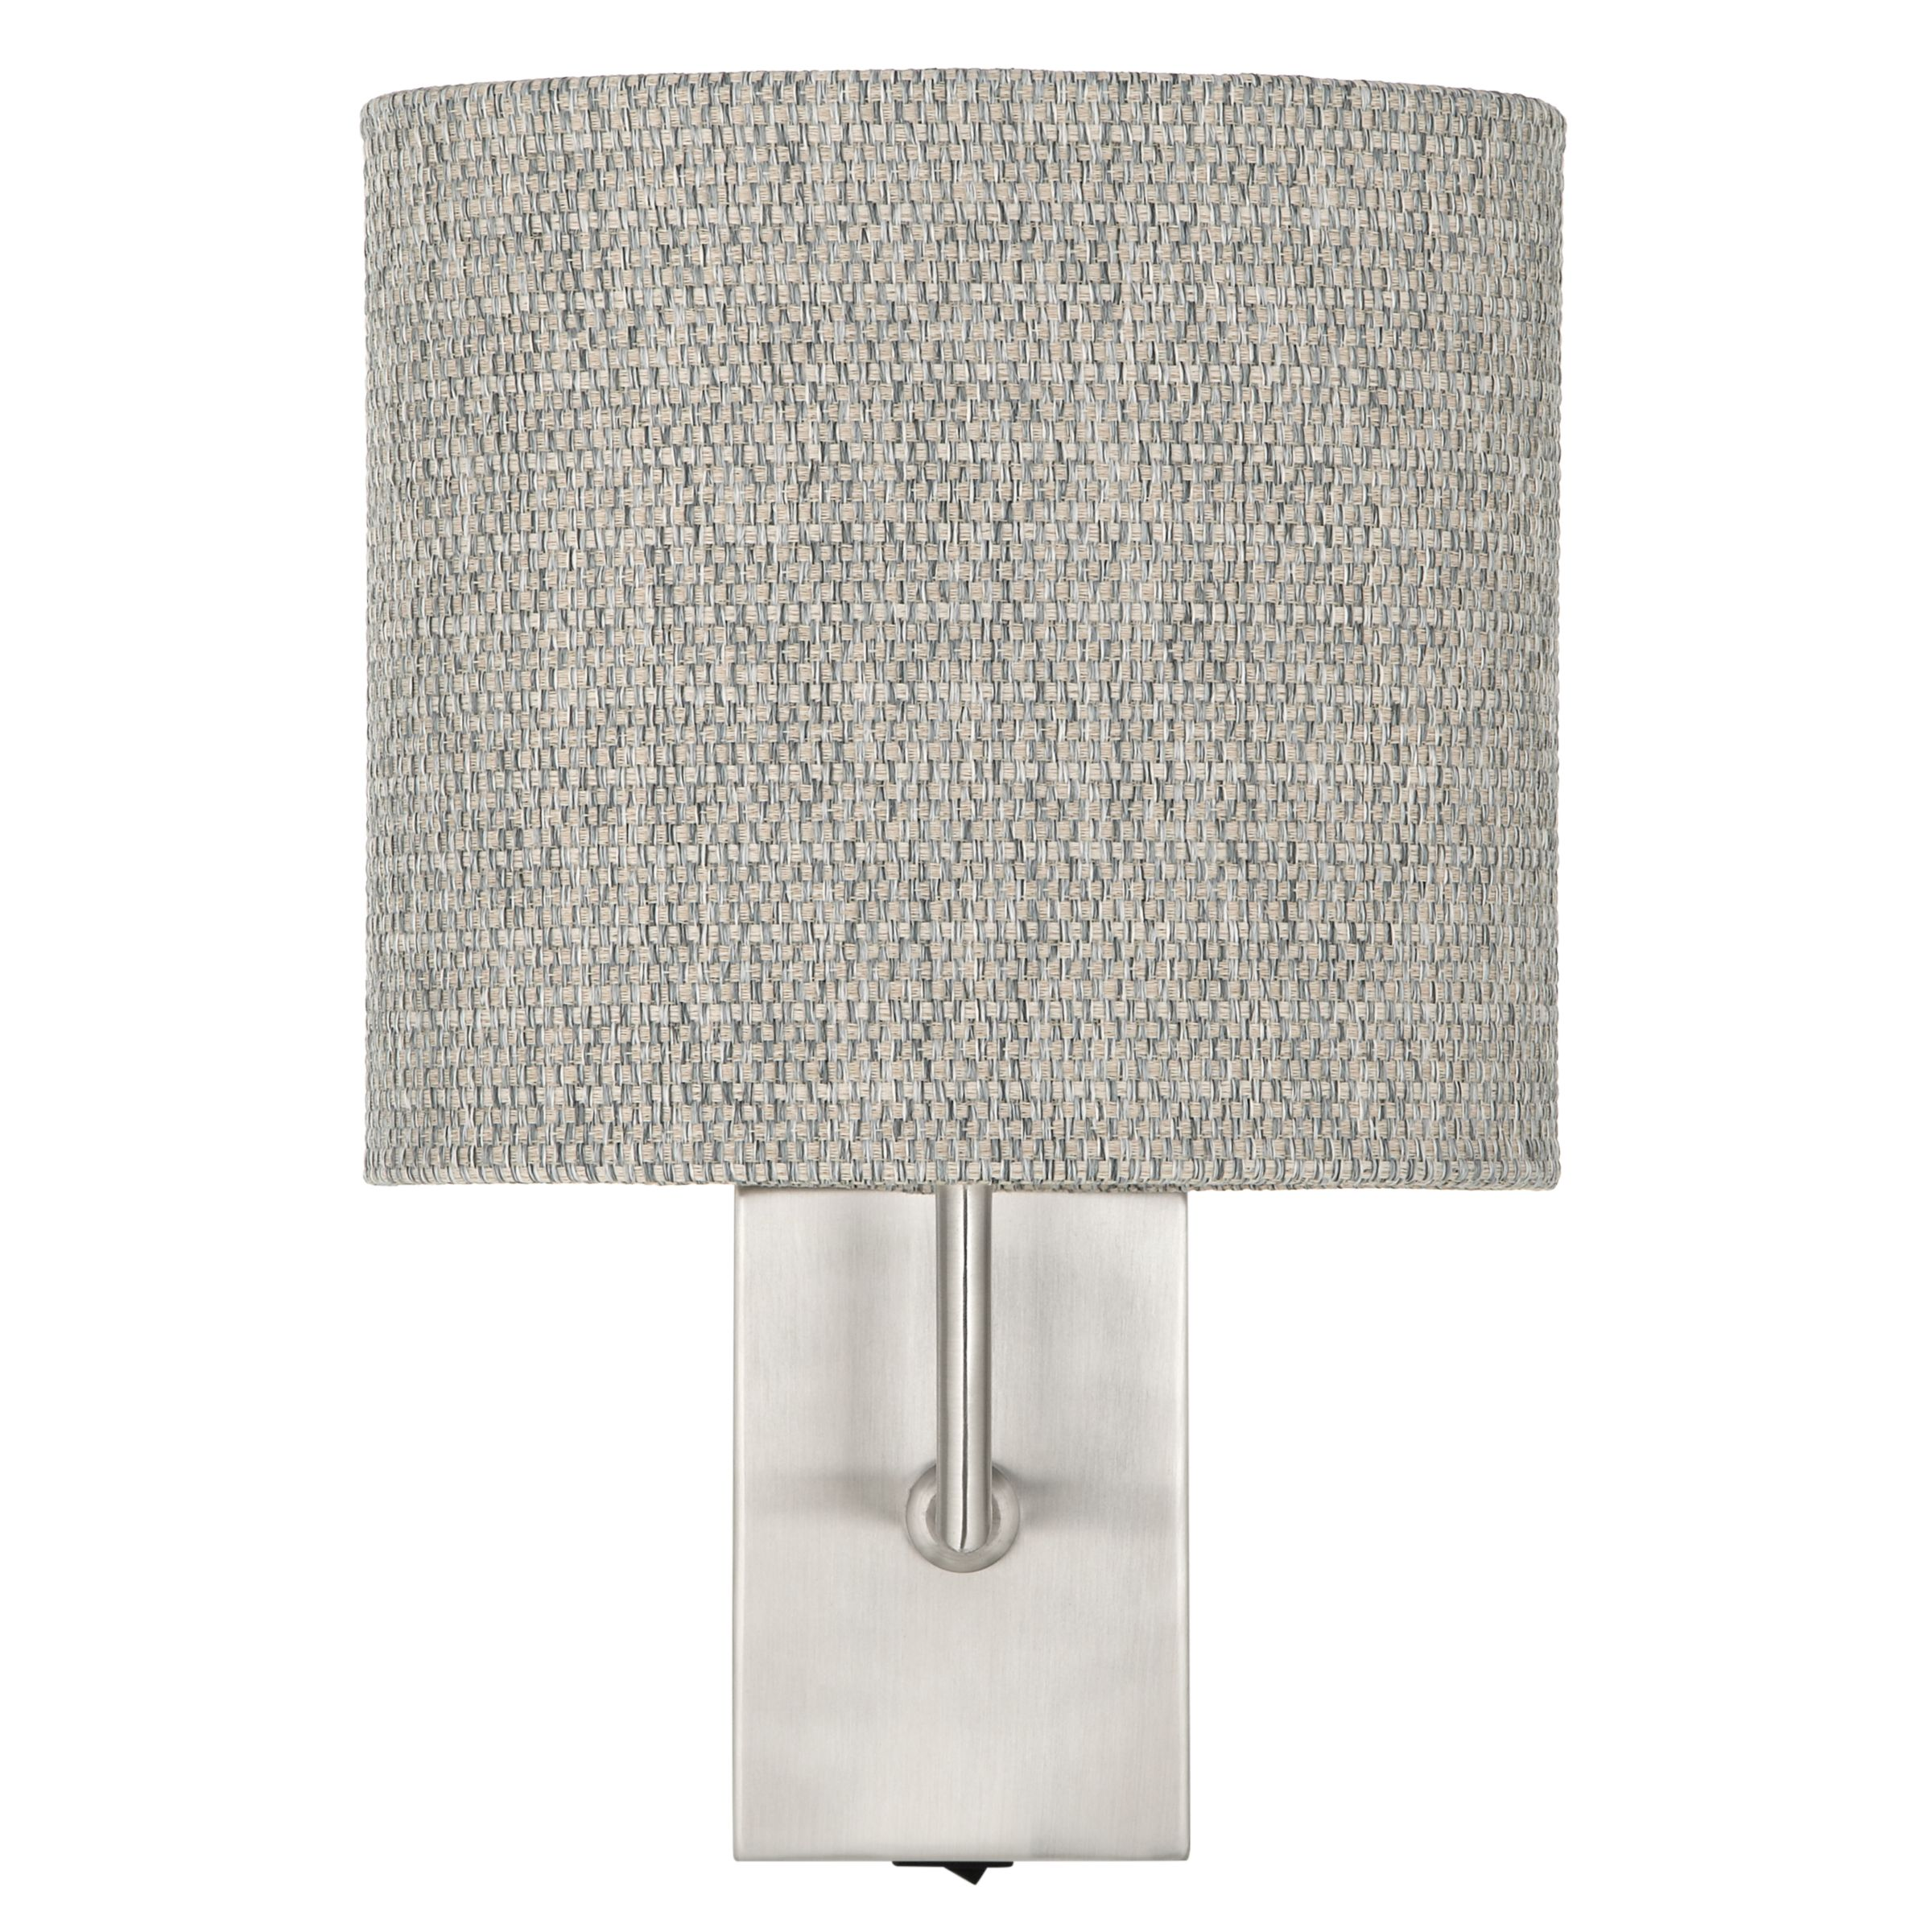 Buy John Lewis Lorenzo Textured Shade Wall Light John Lewis